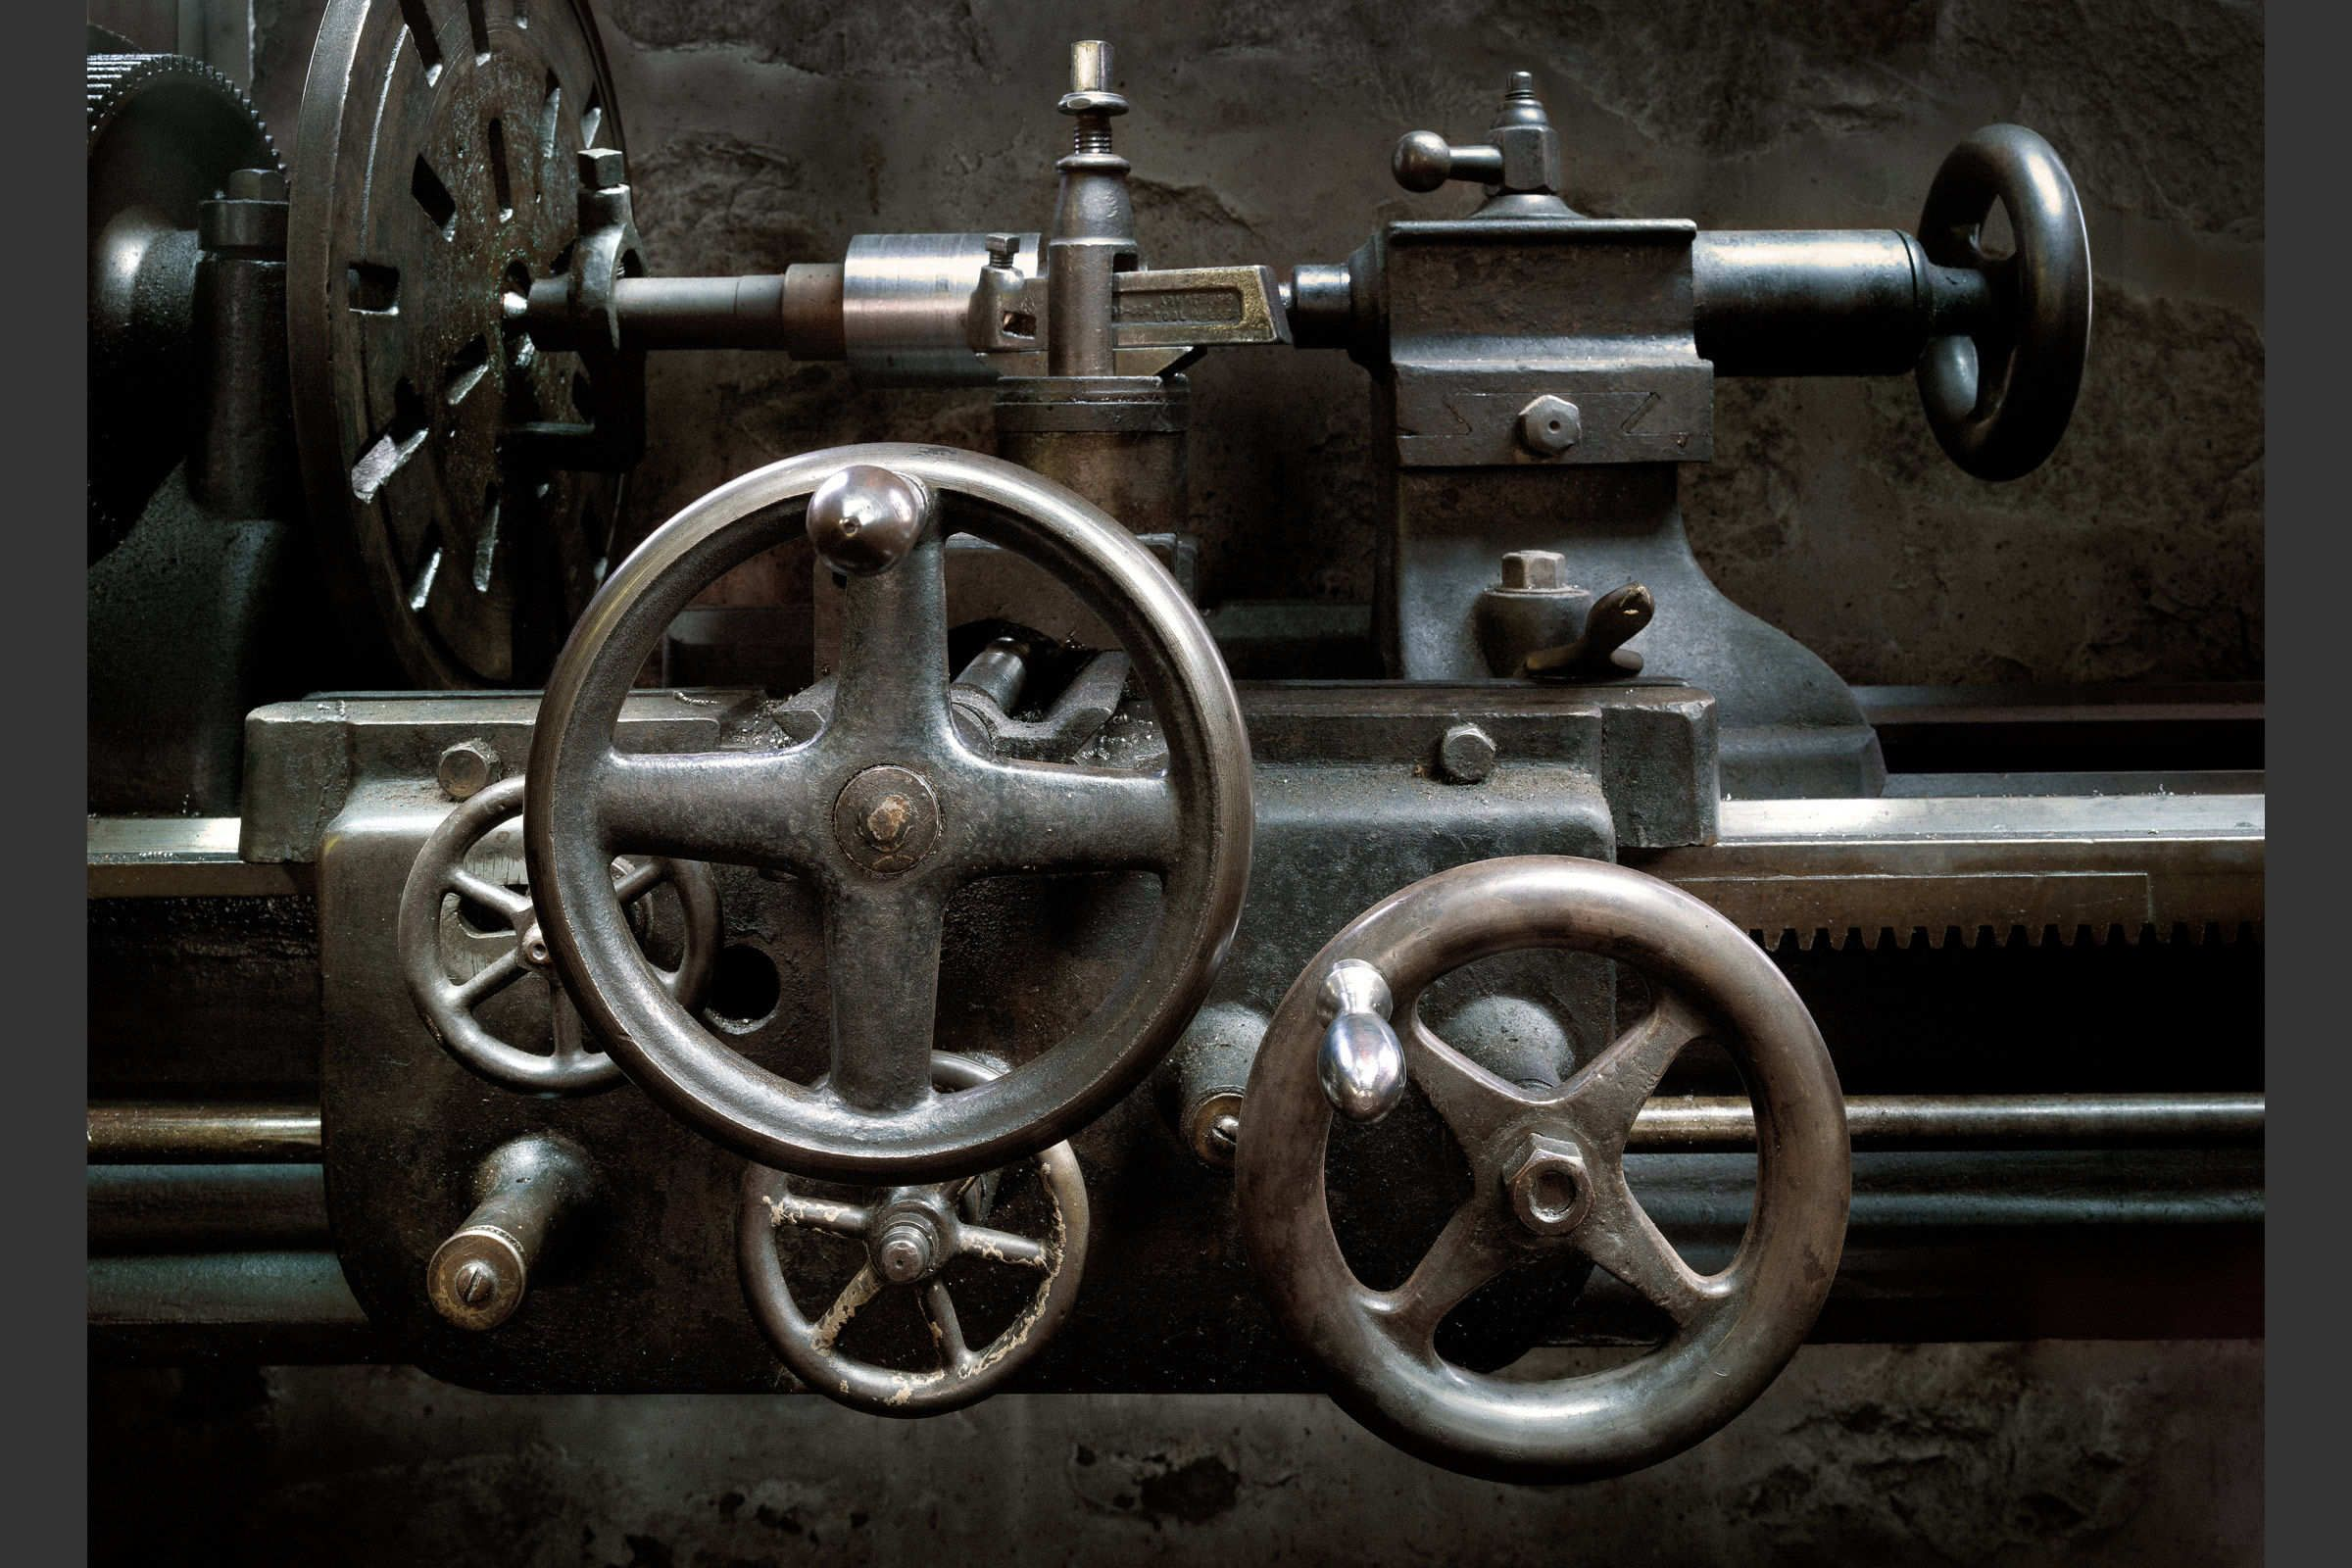 Lathe Hagley Museum by Harold Ross